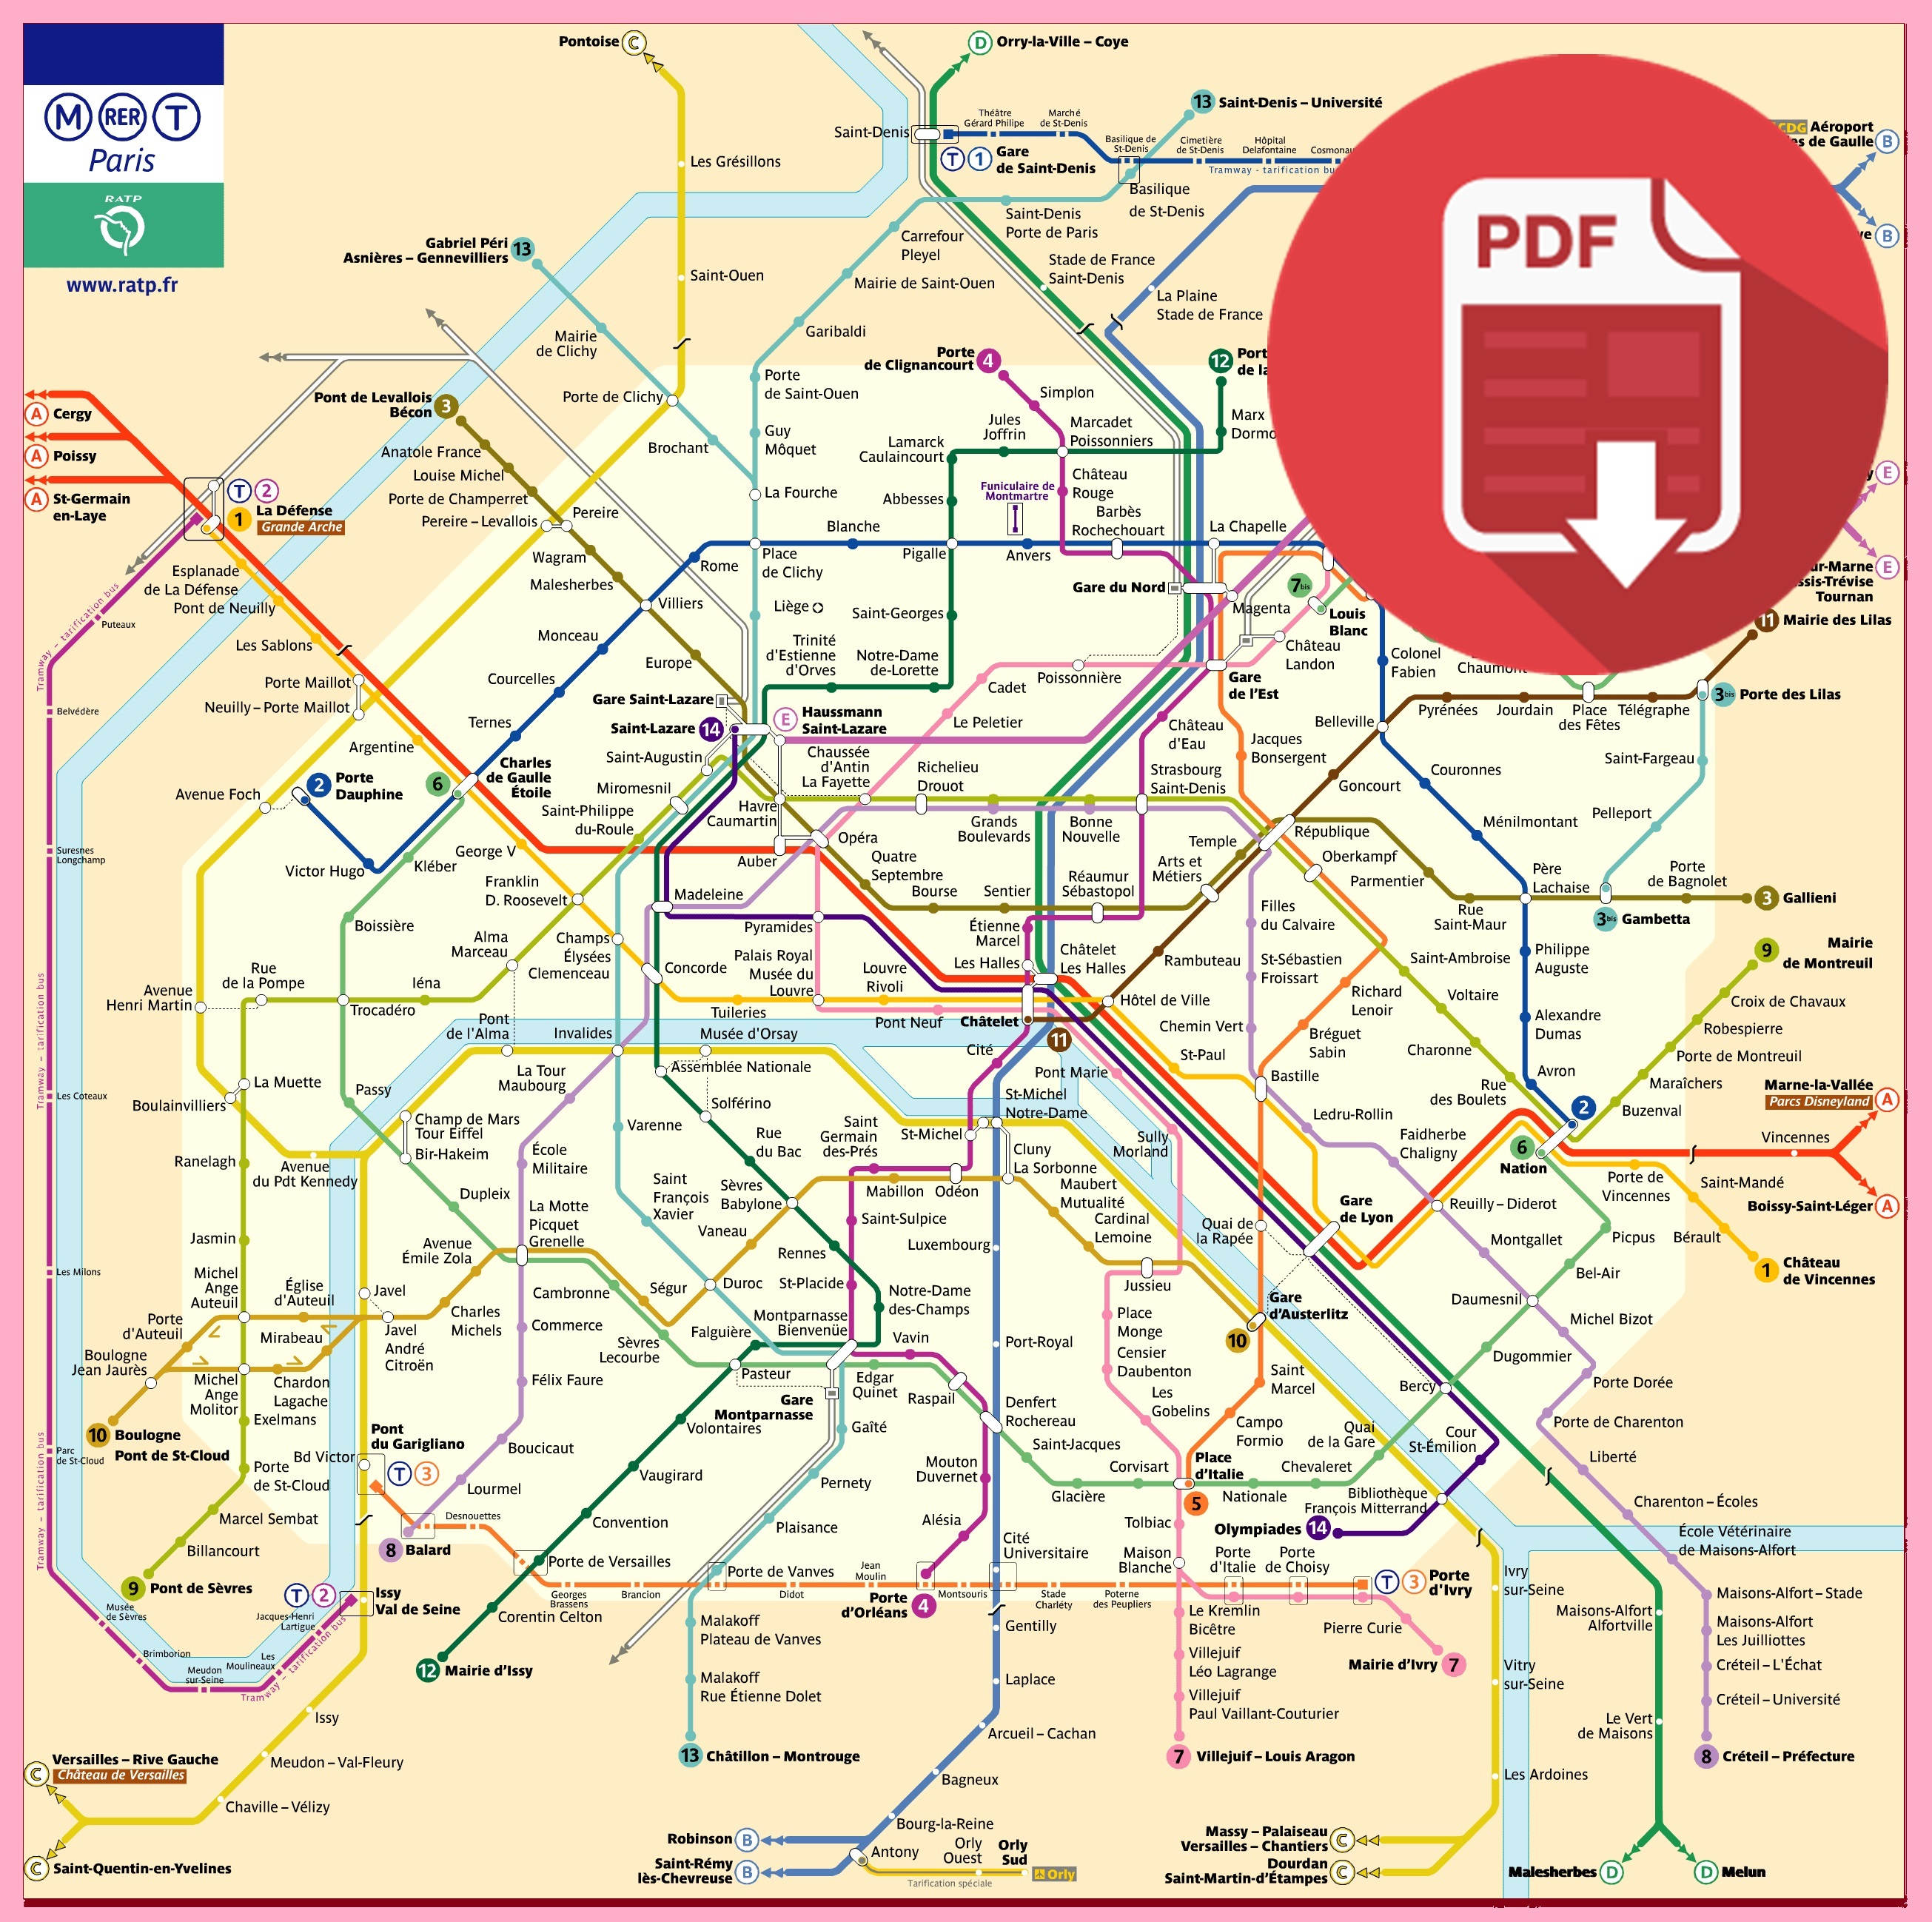 Plan Métro Paris 2017   Guidebooky le Plan du Métro de Paris en 2017